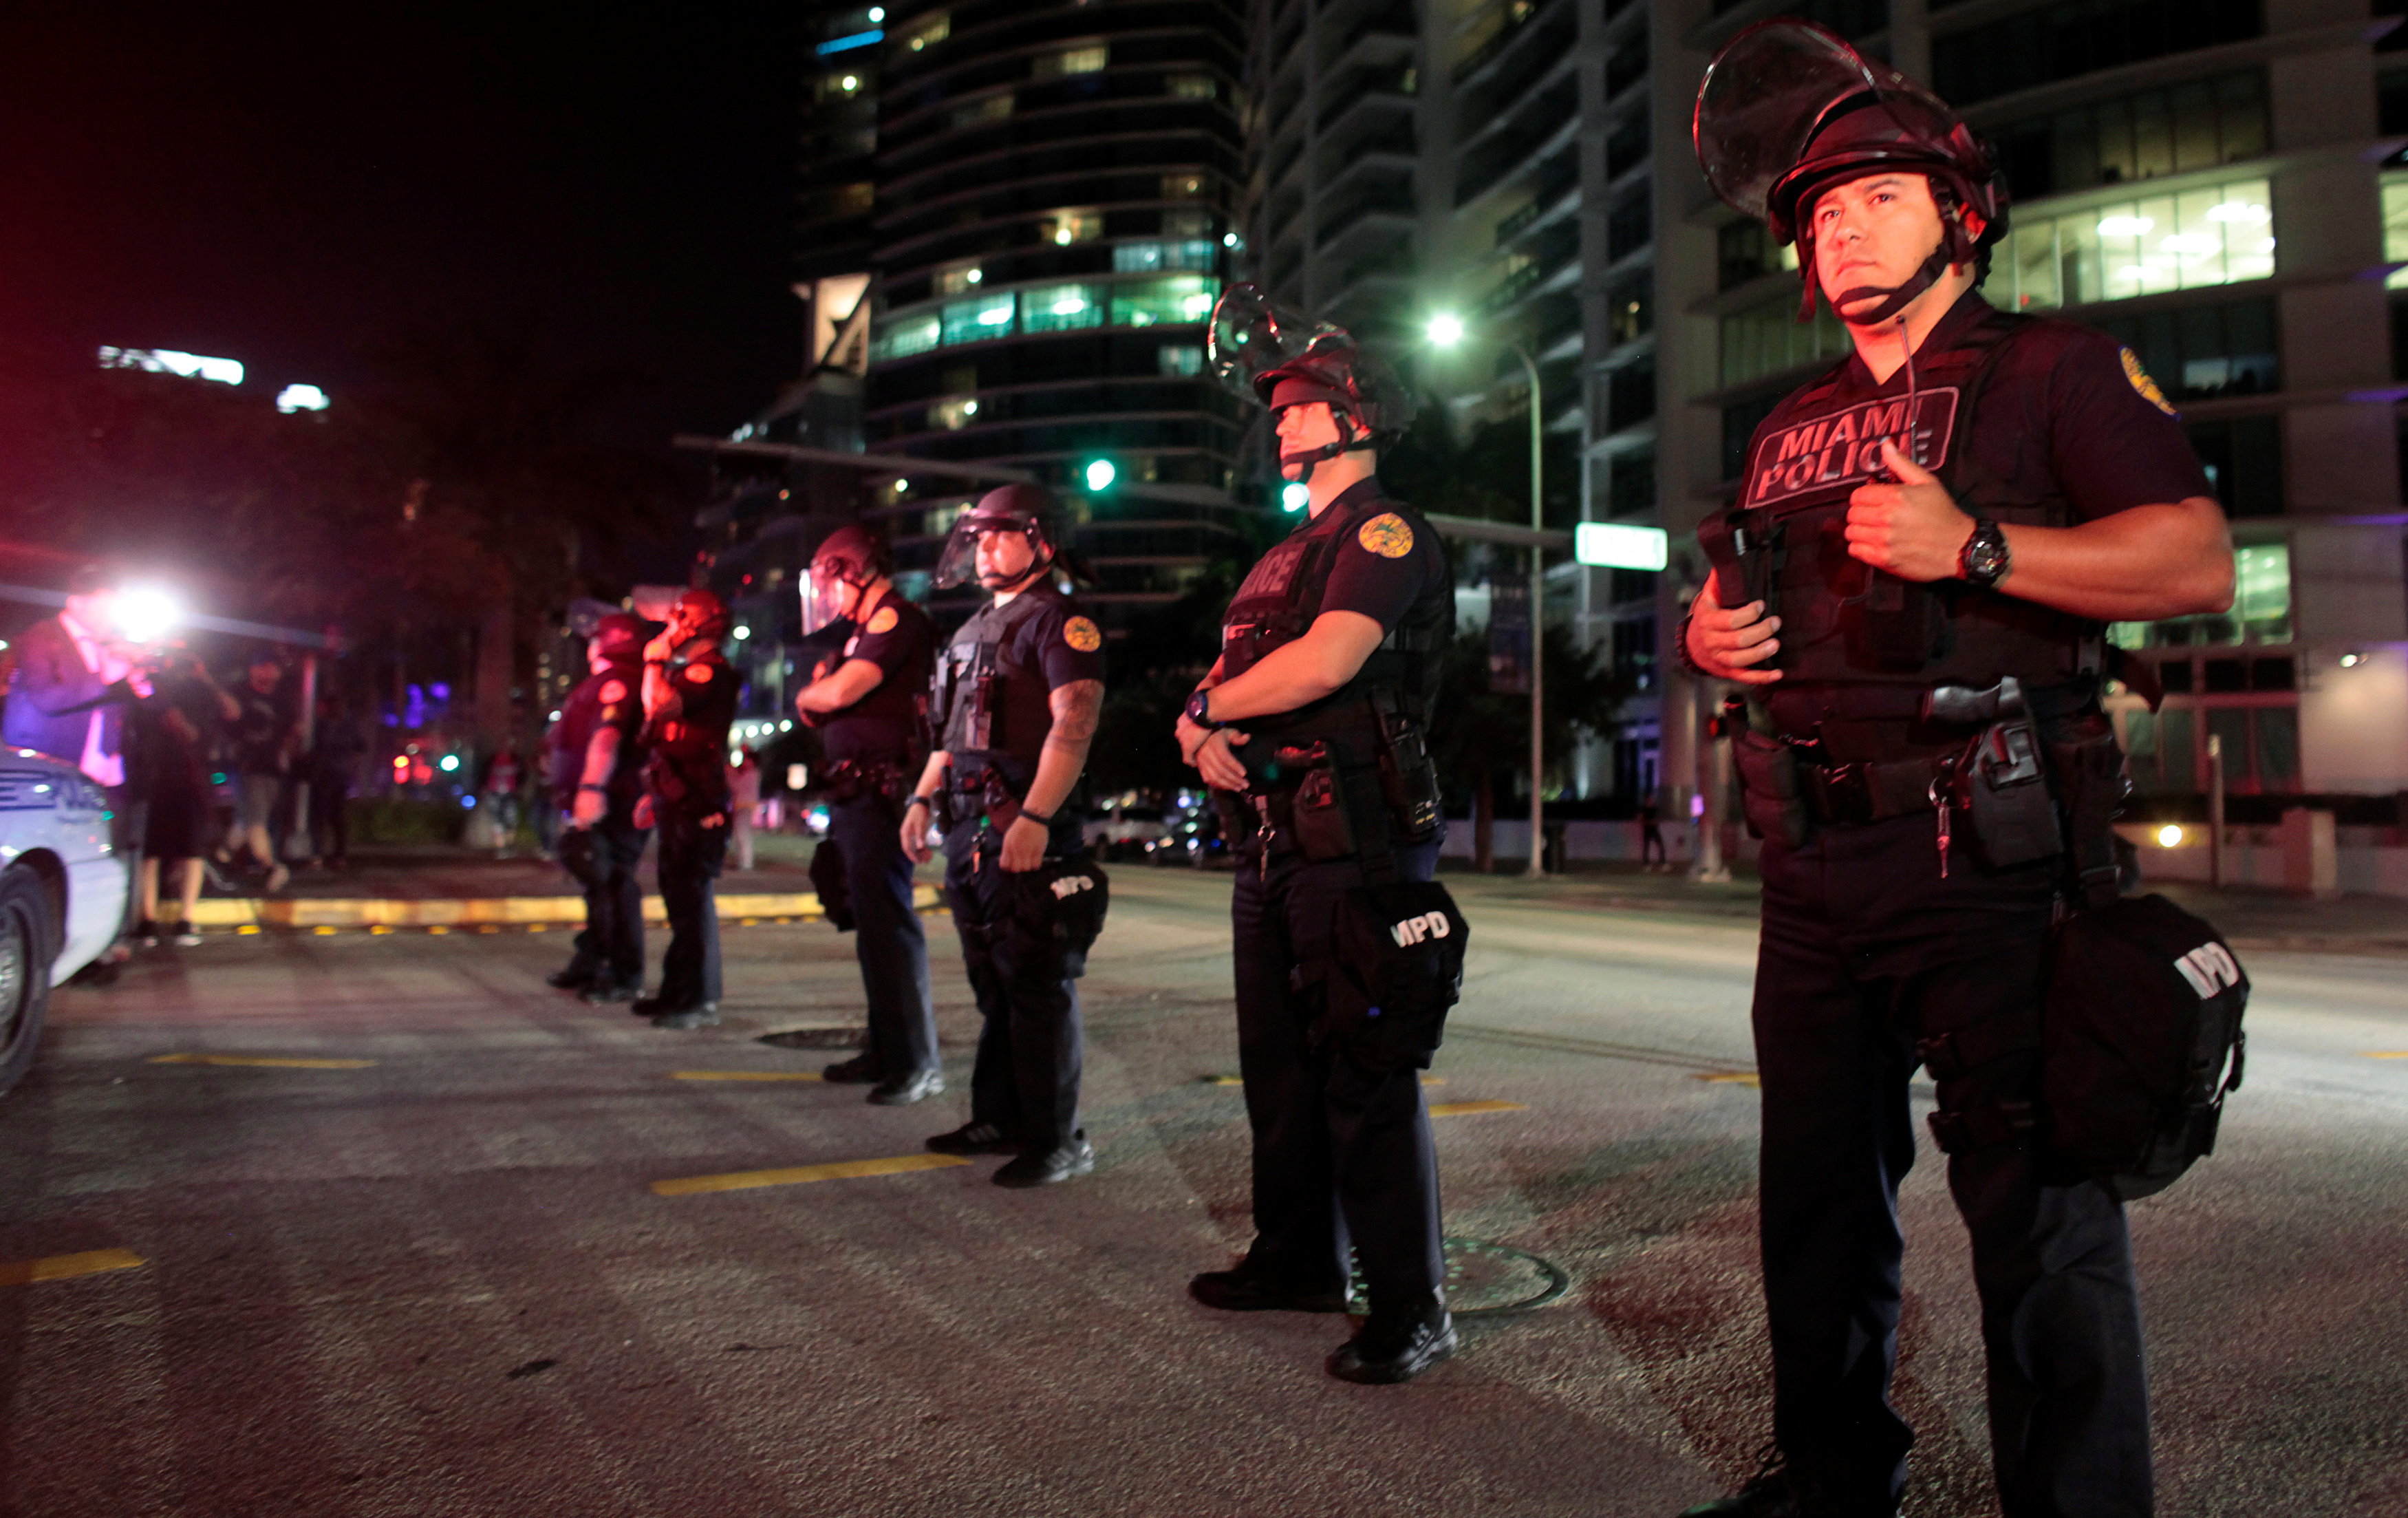 Police officers stand guard during a protest against U.S. President-elect Donald Trump in Miami, Florida, U.S. November 11, 2016. REUTERS/Javier Galeano - RTX2TAO6